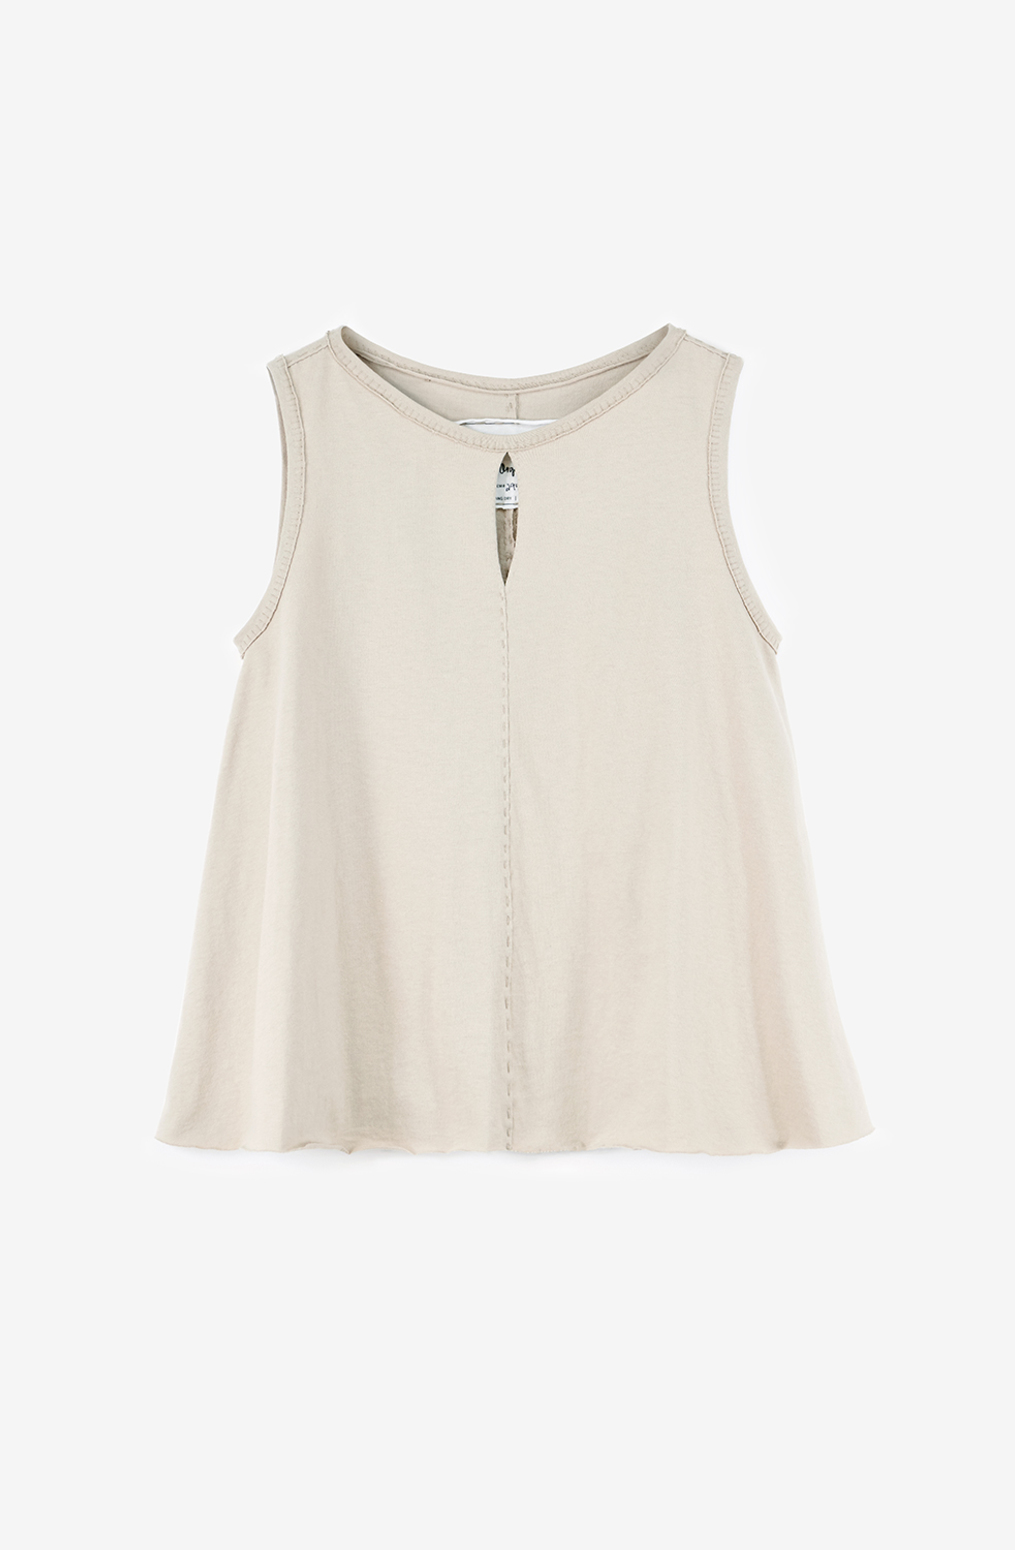 Alabama chanin womens keyhole aline top